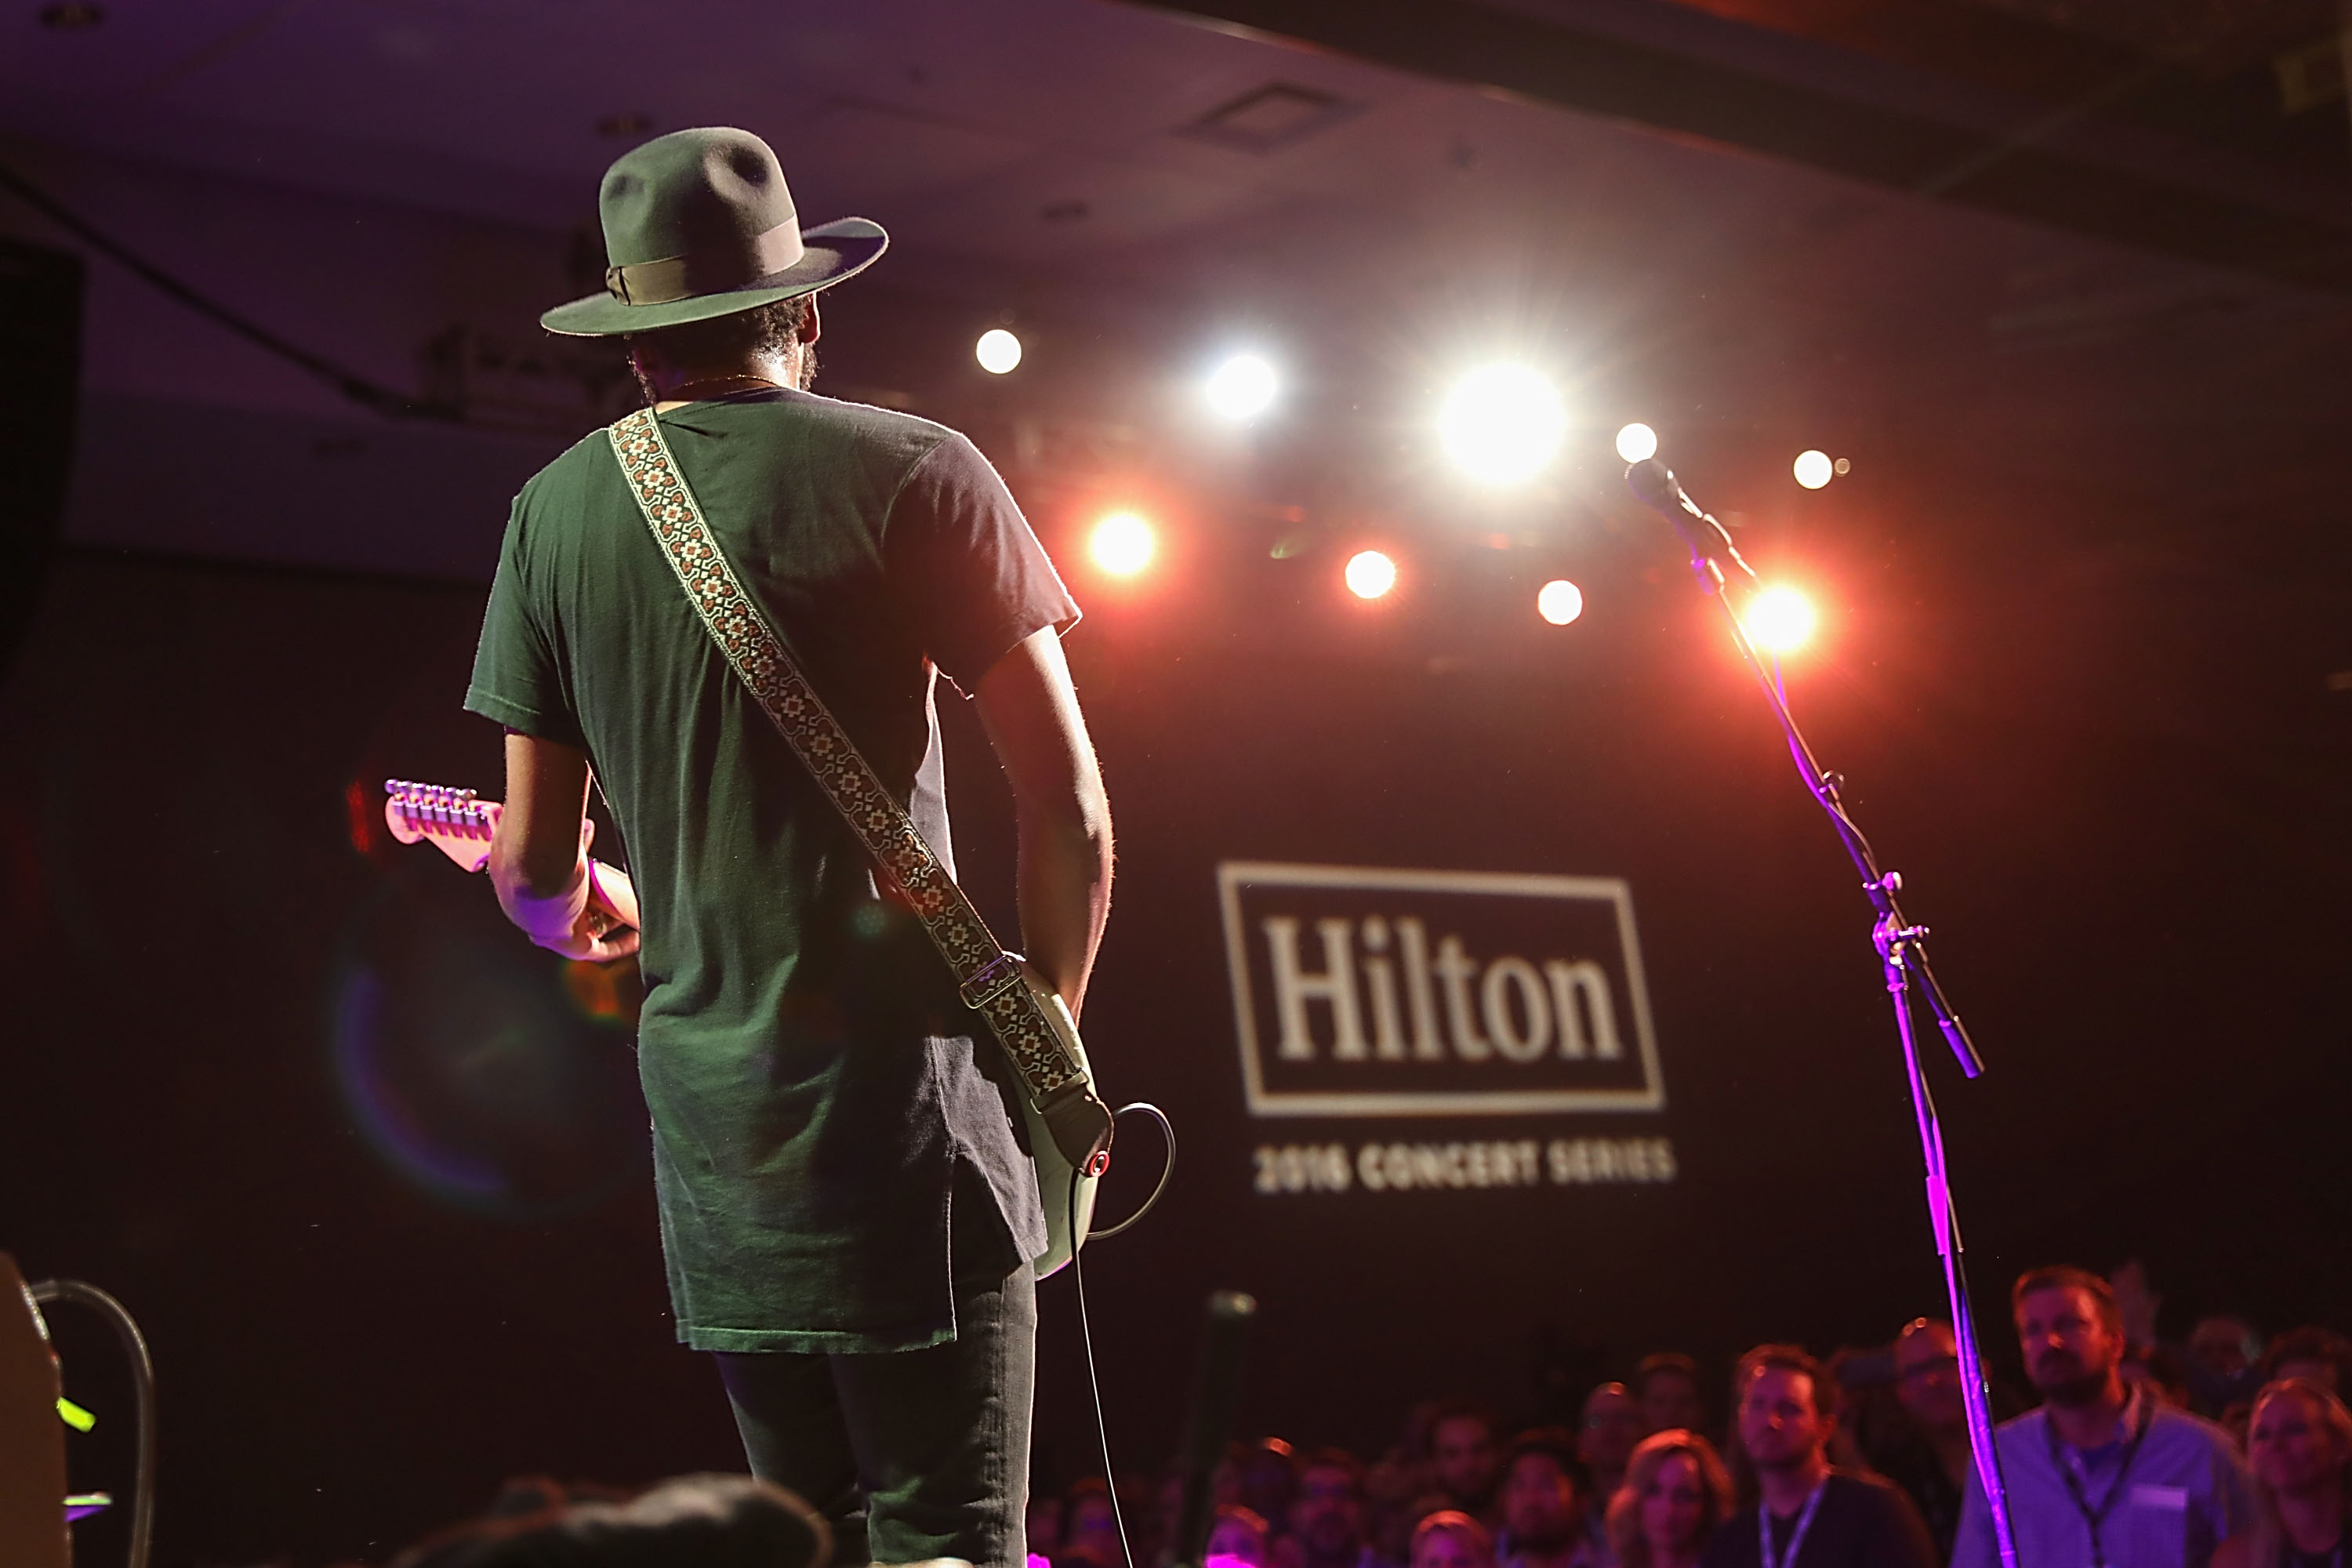 Gary Clark Jr. Closes Out A Successful 2016 Hilton Concert Series With A Private Show For Hilton HHonors Members And Fans In Austin